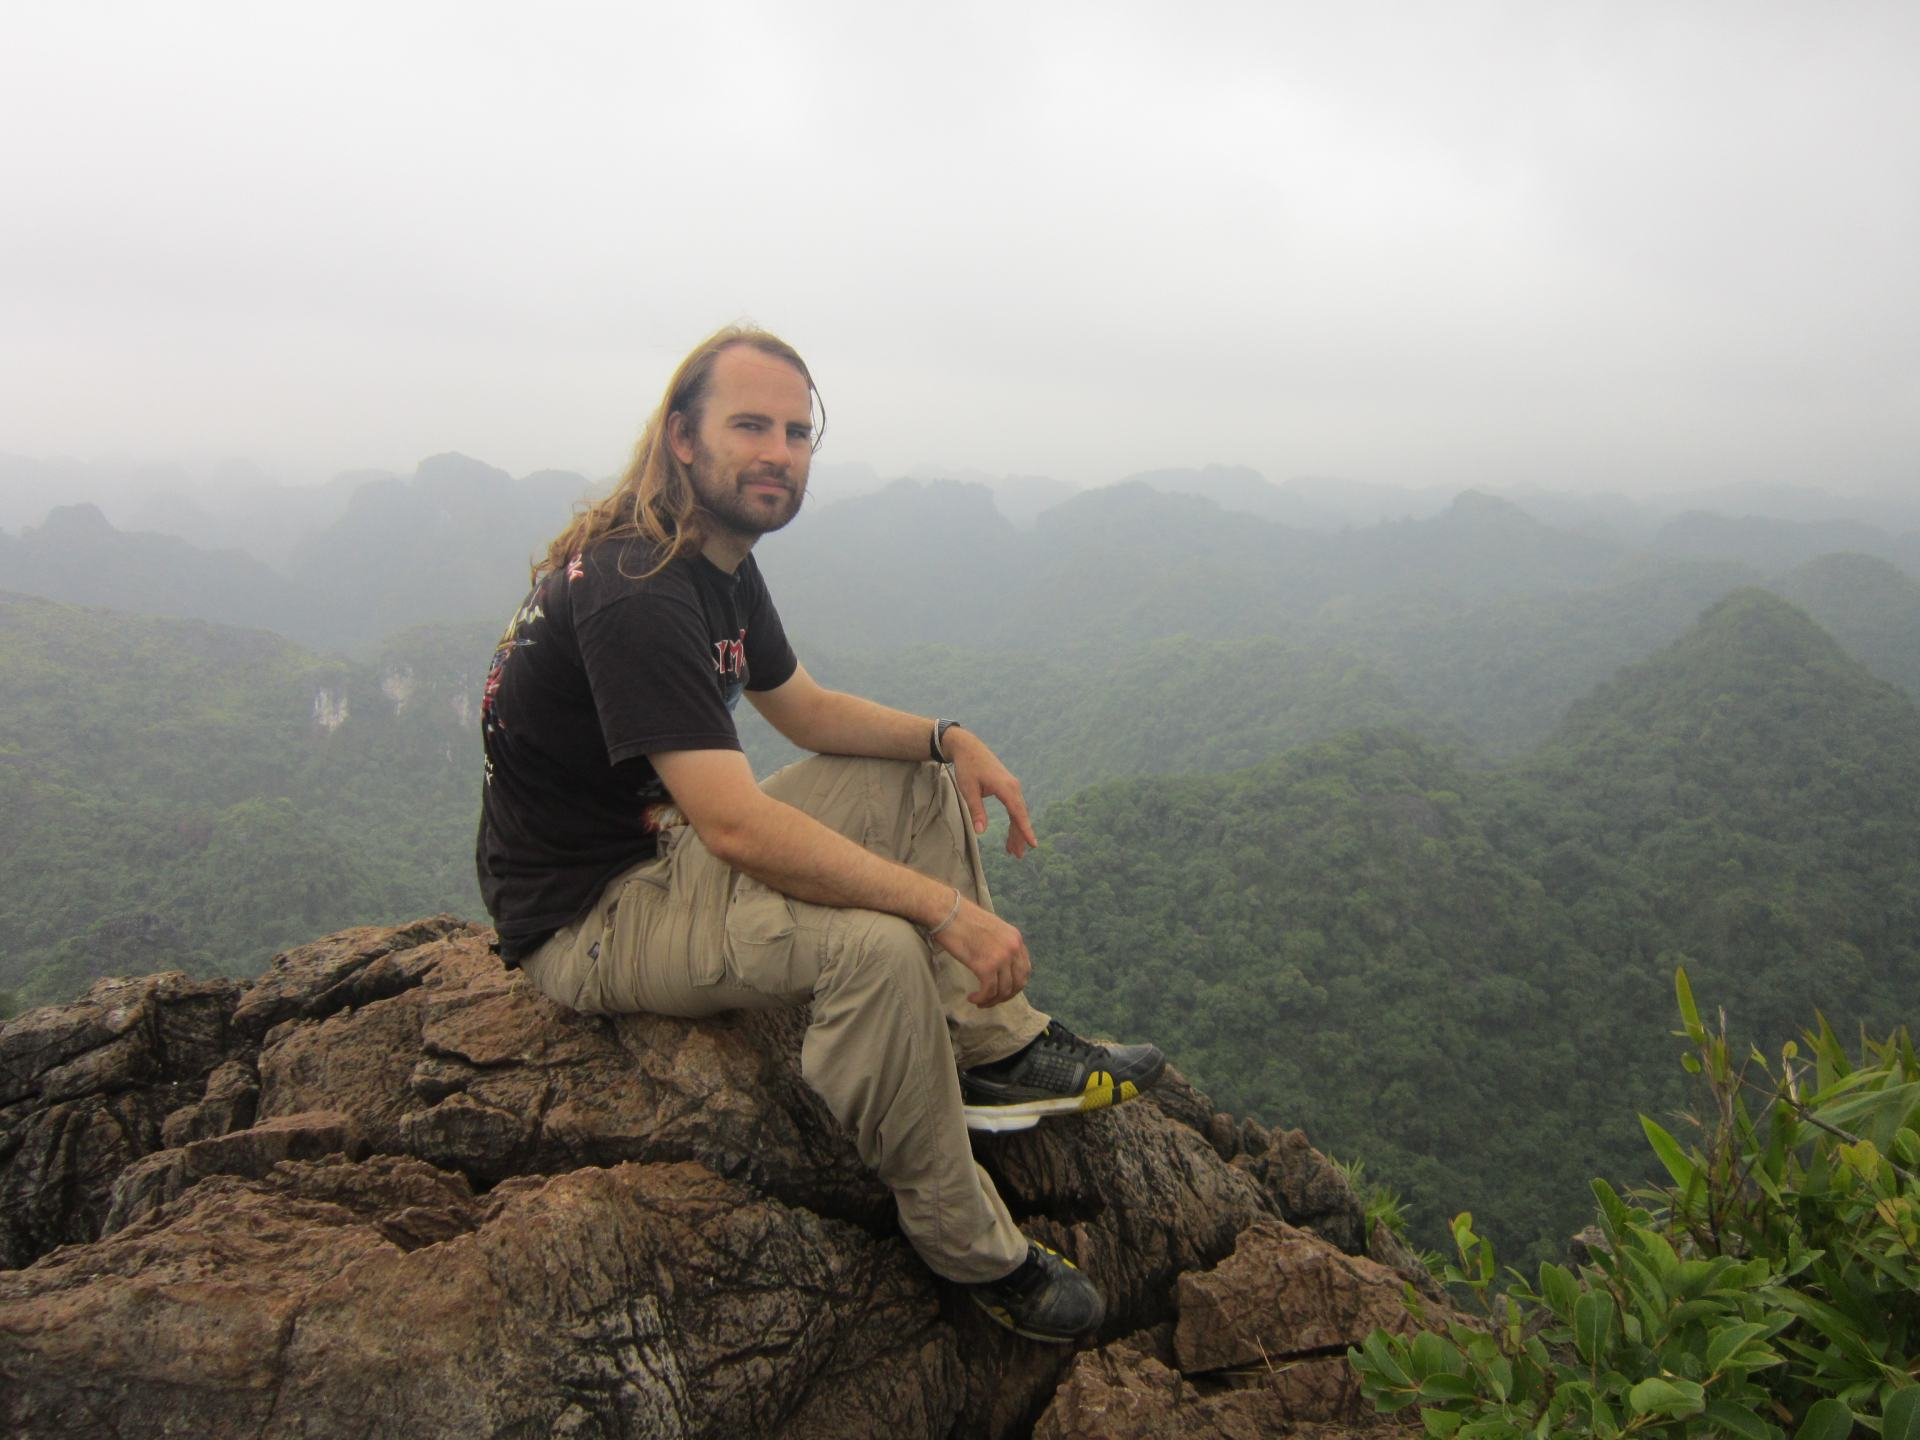 Dave Does the Travel Thing sat on rocks overlooking a misty jungle.